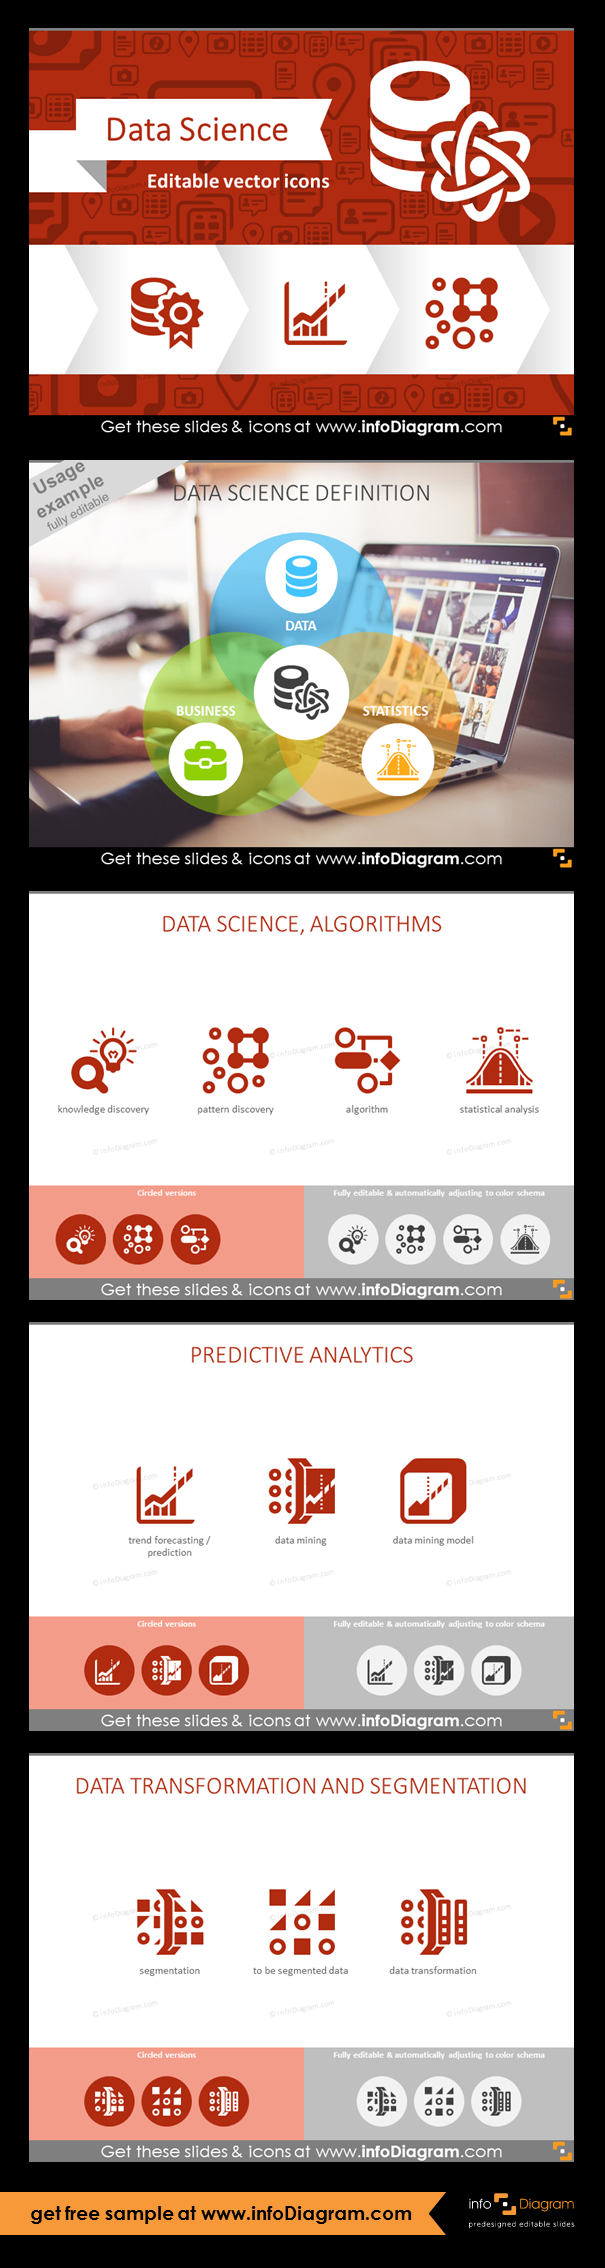 30 Data Science Icons Big Data Predictive Analitics Ppt Presentation Infographics Data Science Exploratory Data Analysis What Is Data Science